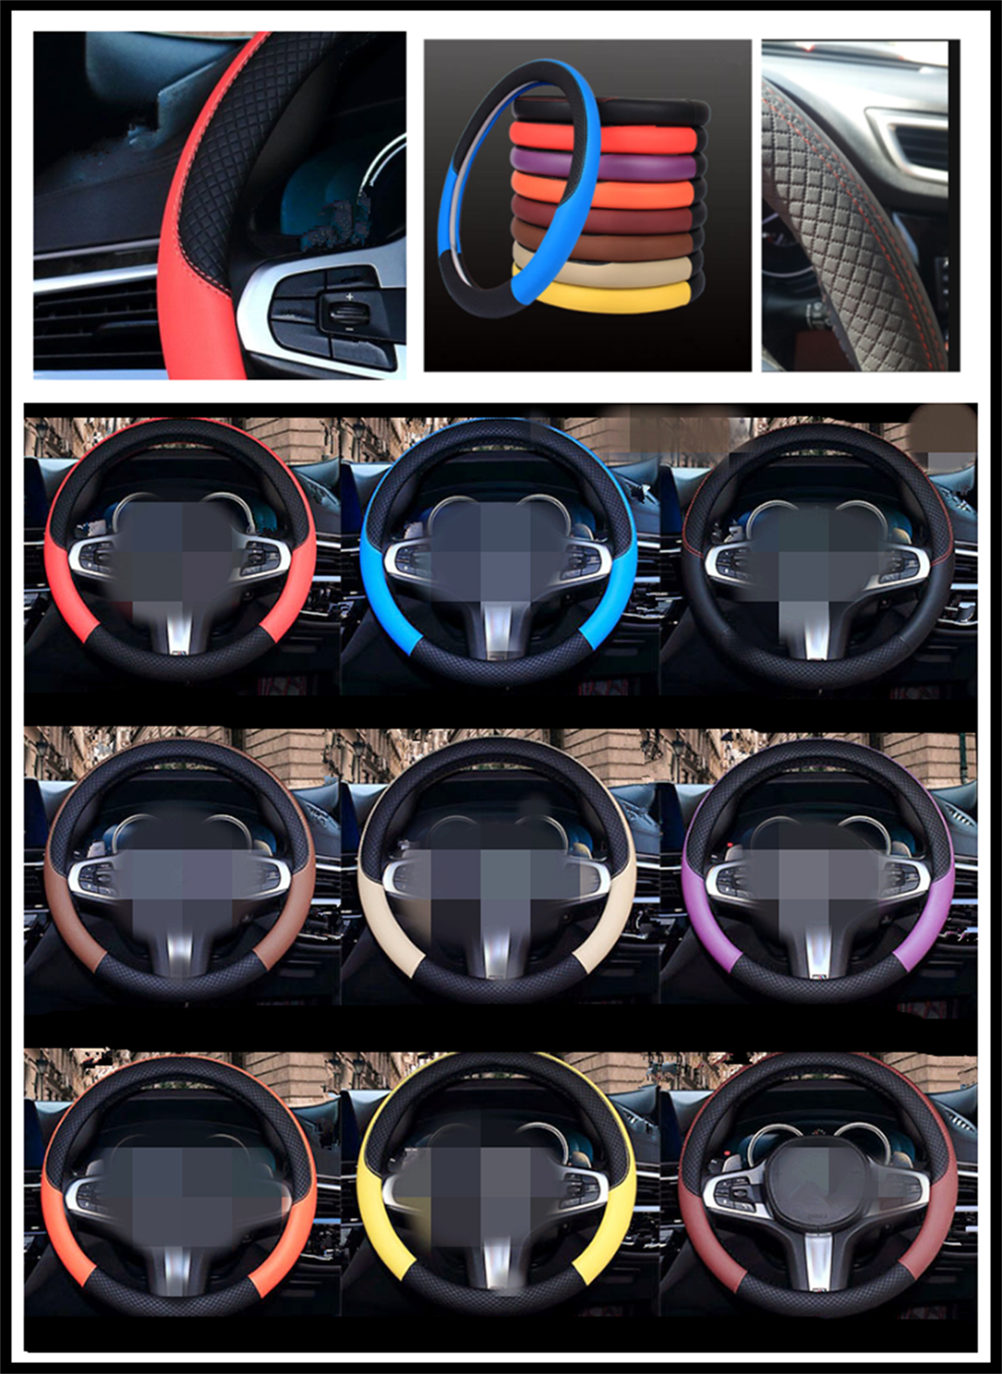 auto-parts-steering-wheel-cover-38-cm-or-15-inches-leather-weaving-for-mclaren-font-b-senna-b-font-720s-600lt-570s-675lt-570gt